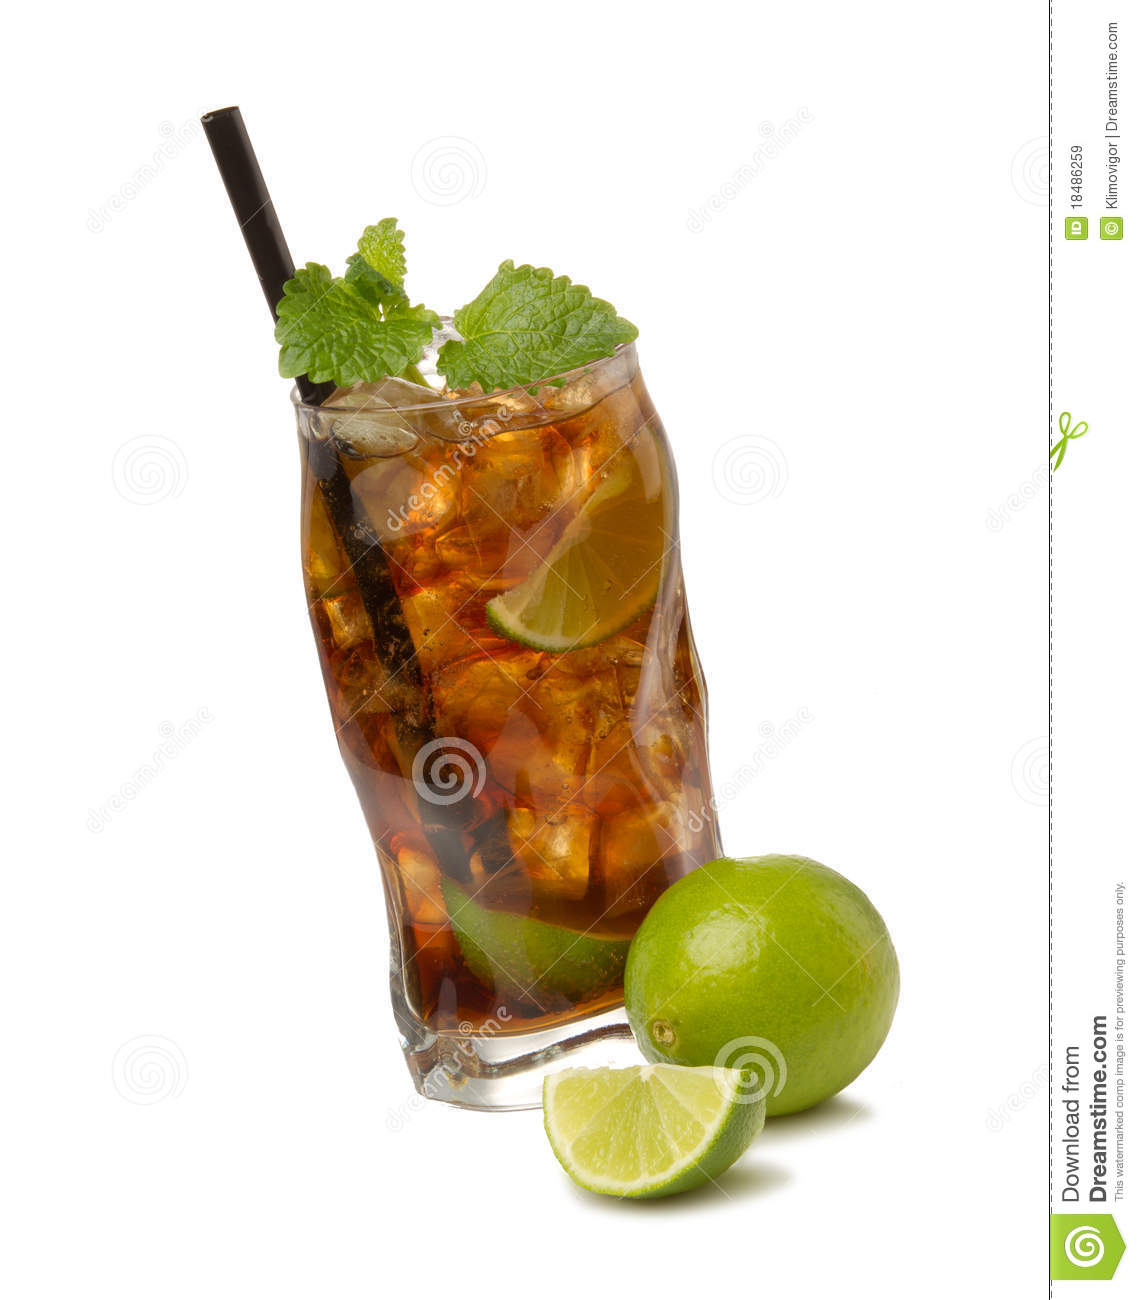 Cuba Libre Drink Cuba Libre Cocktail Royalty Free Stock Images Image